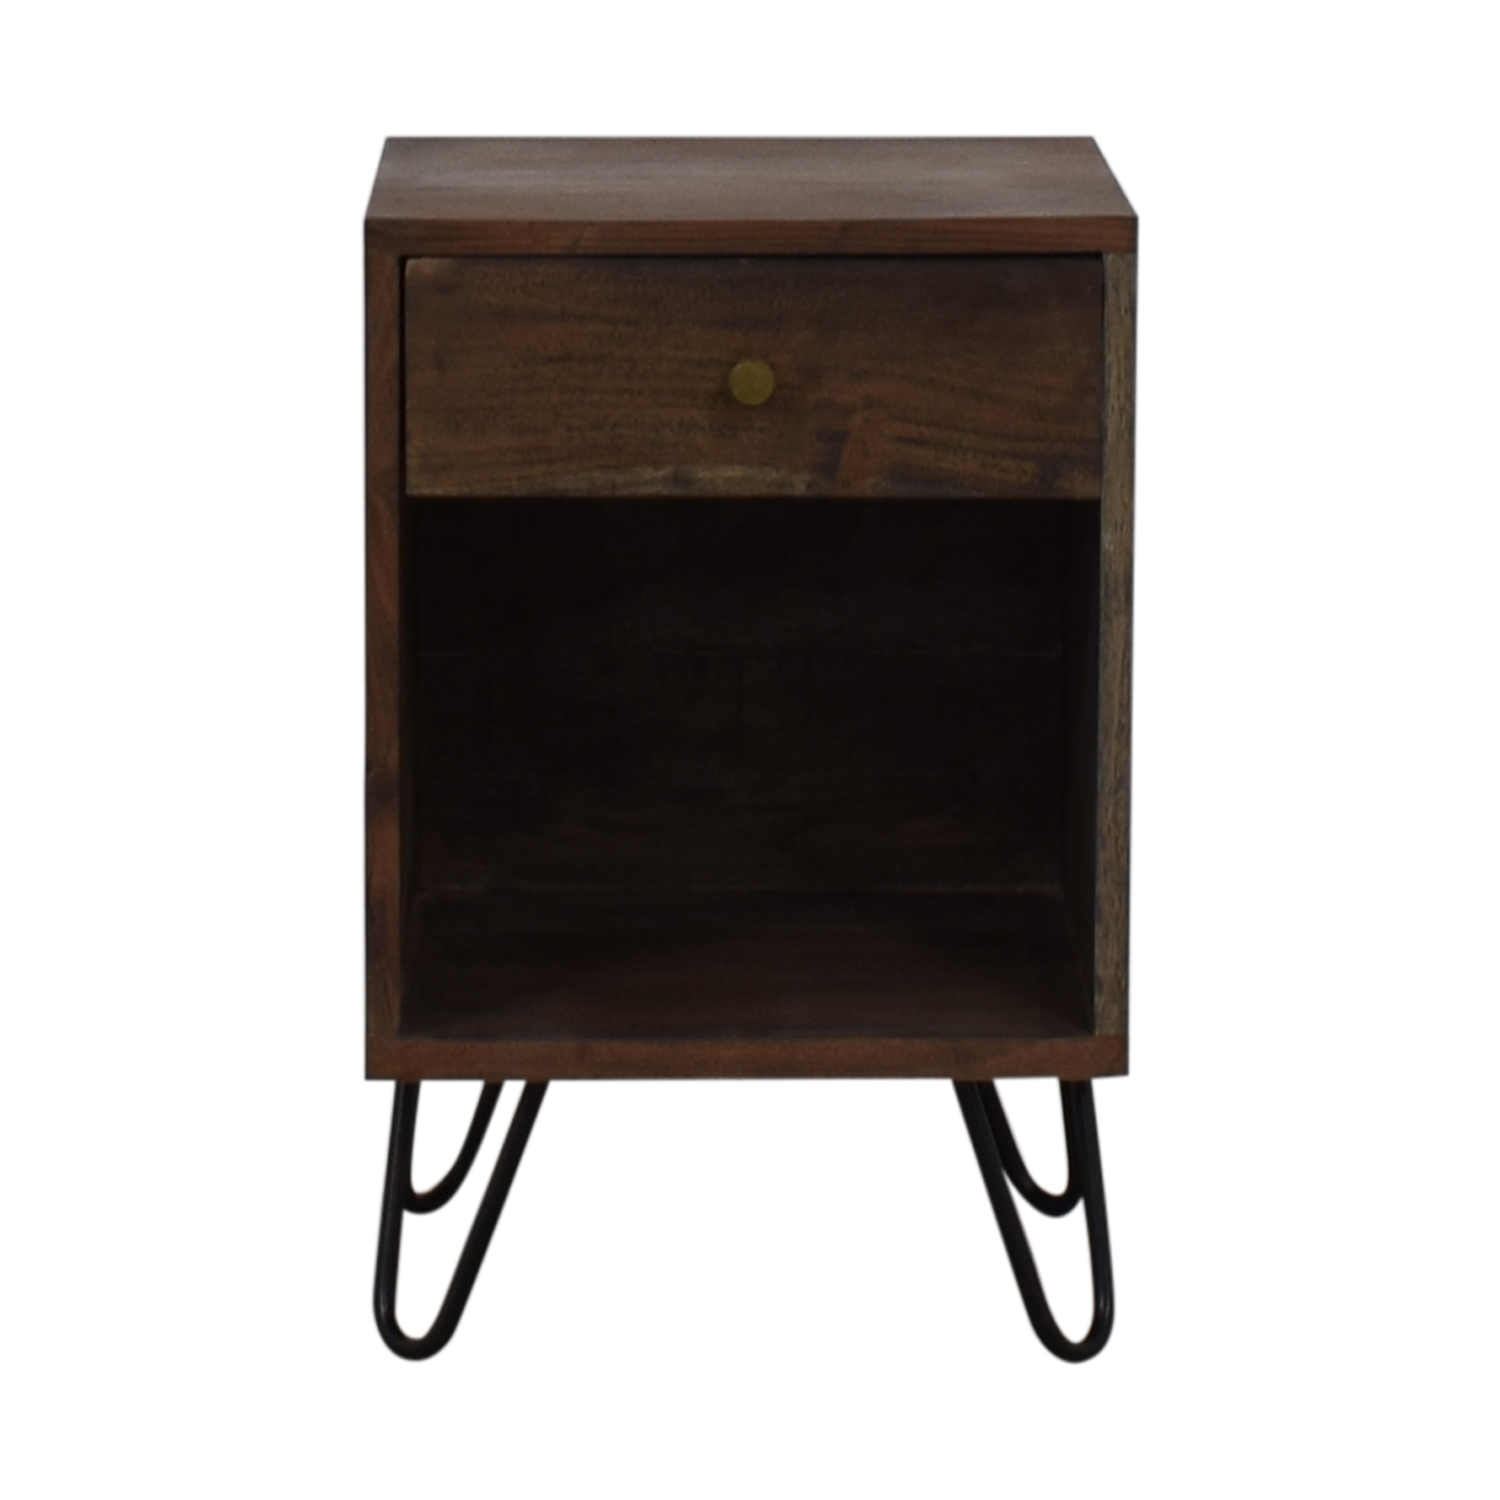 buy Home Goods Single Drawer End Table Home Goods Tables